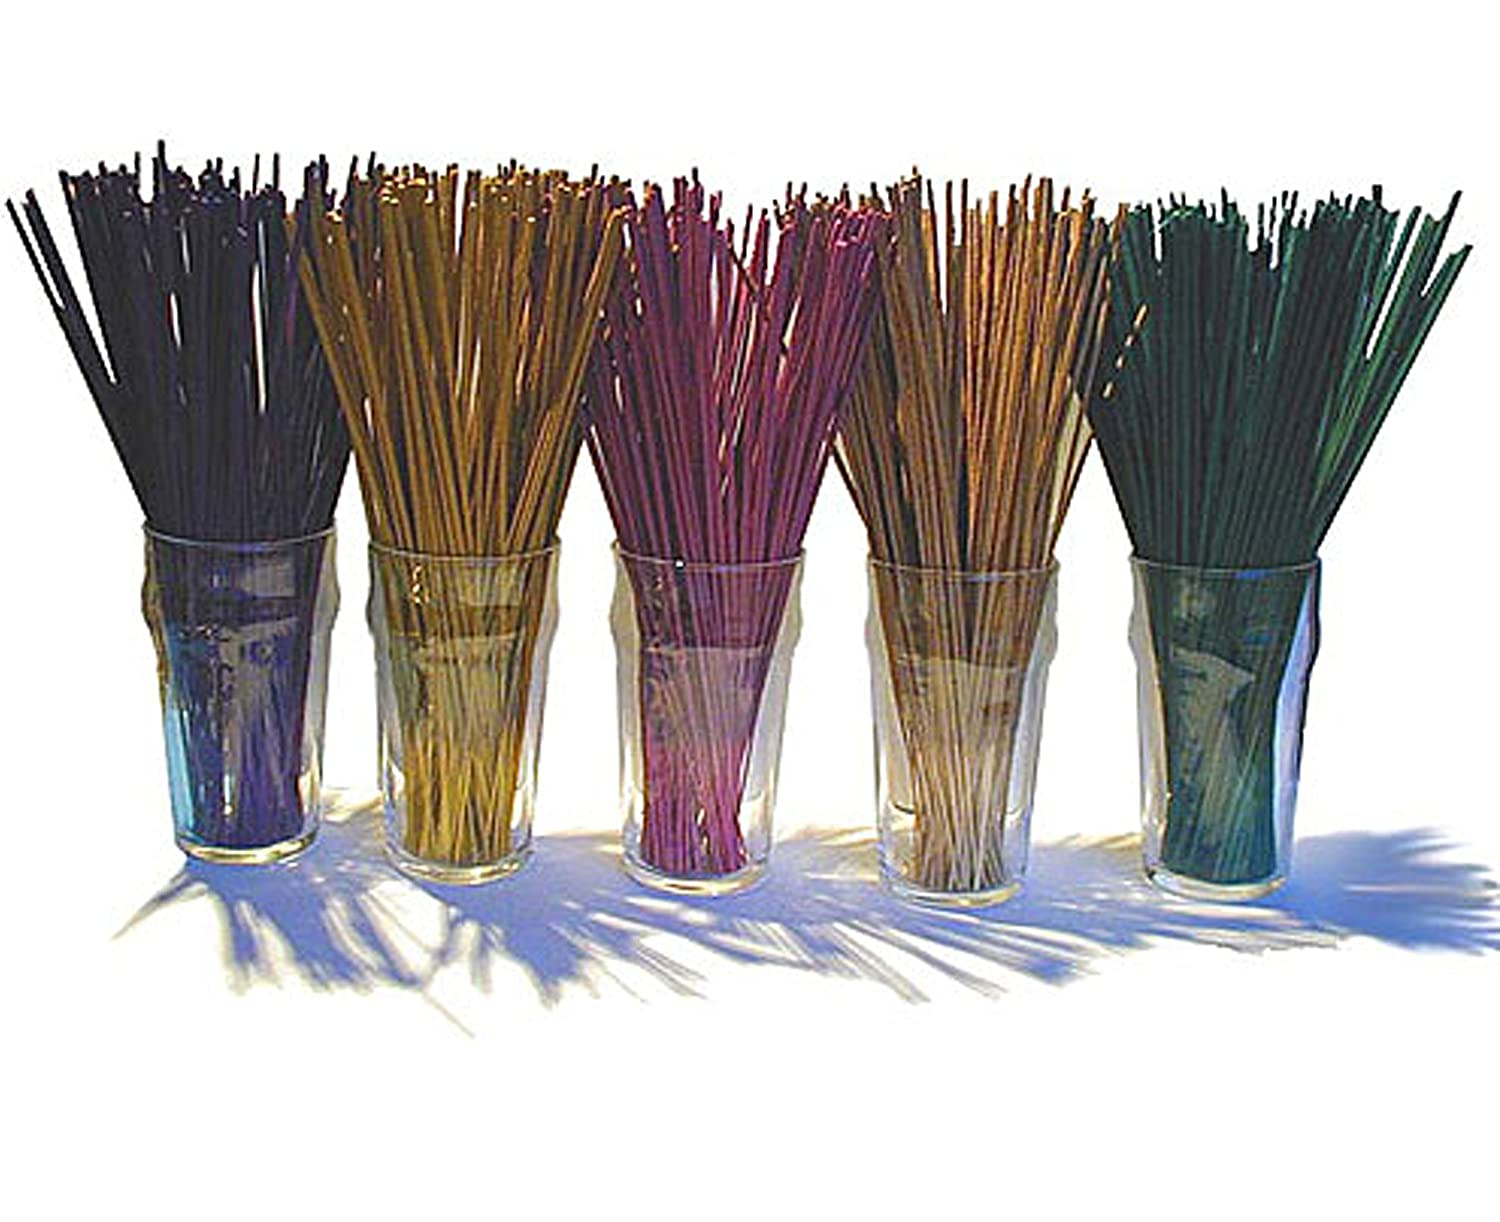 100 MIXED SCENT INCENSE STICKS INCENSE LIMITED